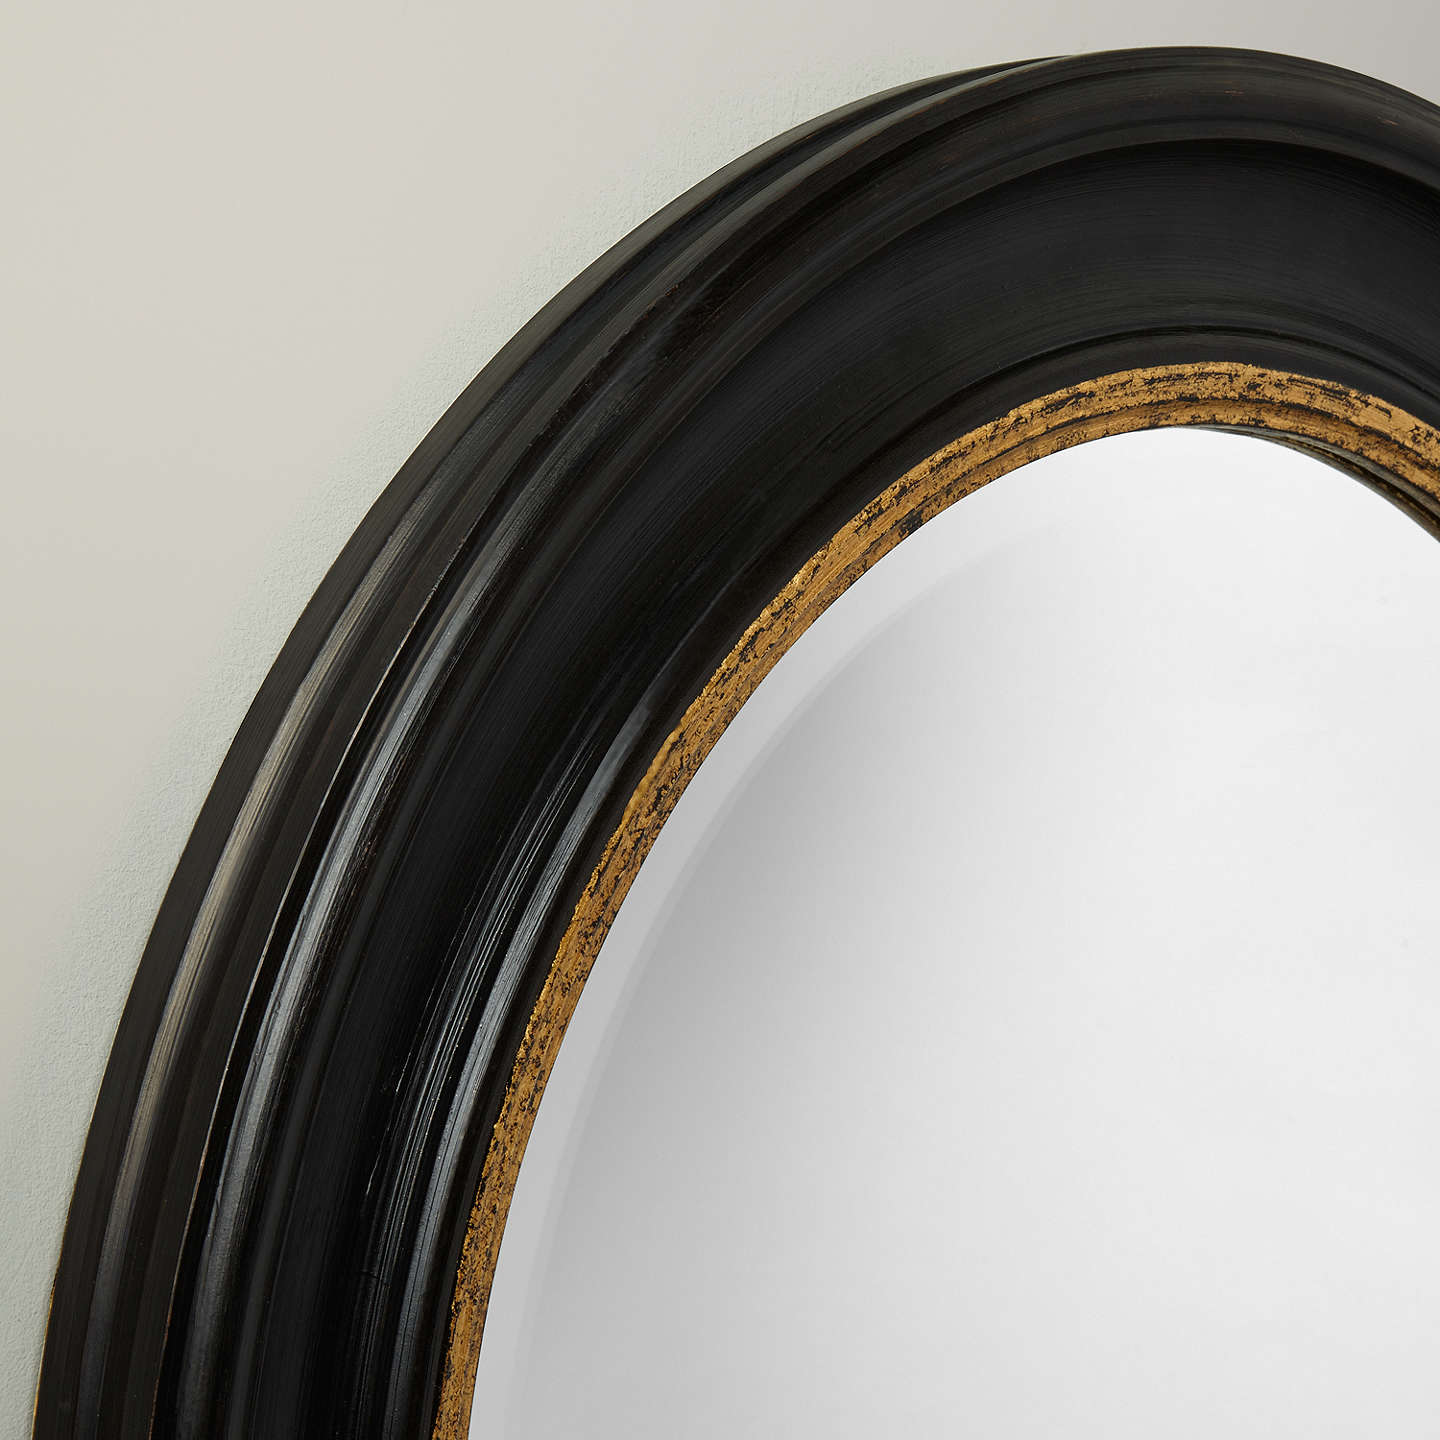 BuyJohn Lewis Circle Wall Mirror, Dia.68cm, Black/Gold Online at johnlewis.com